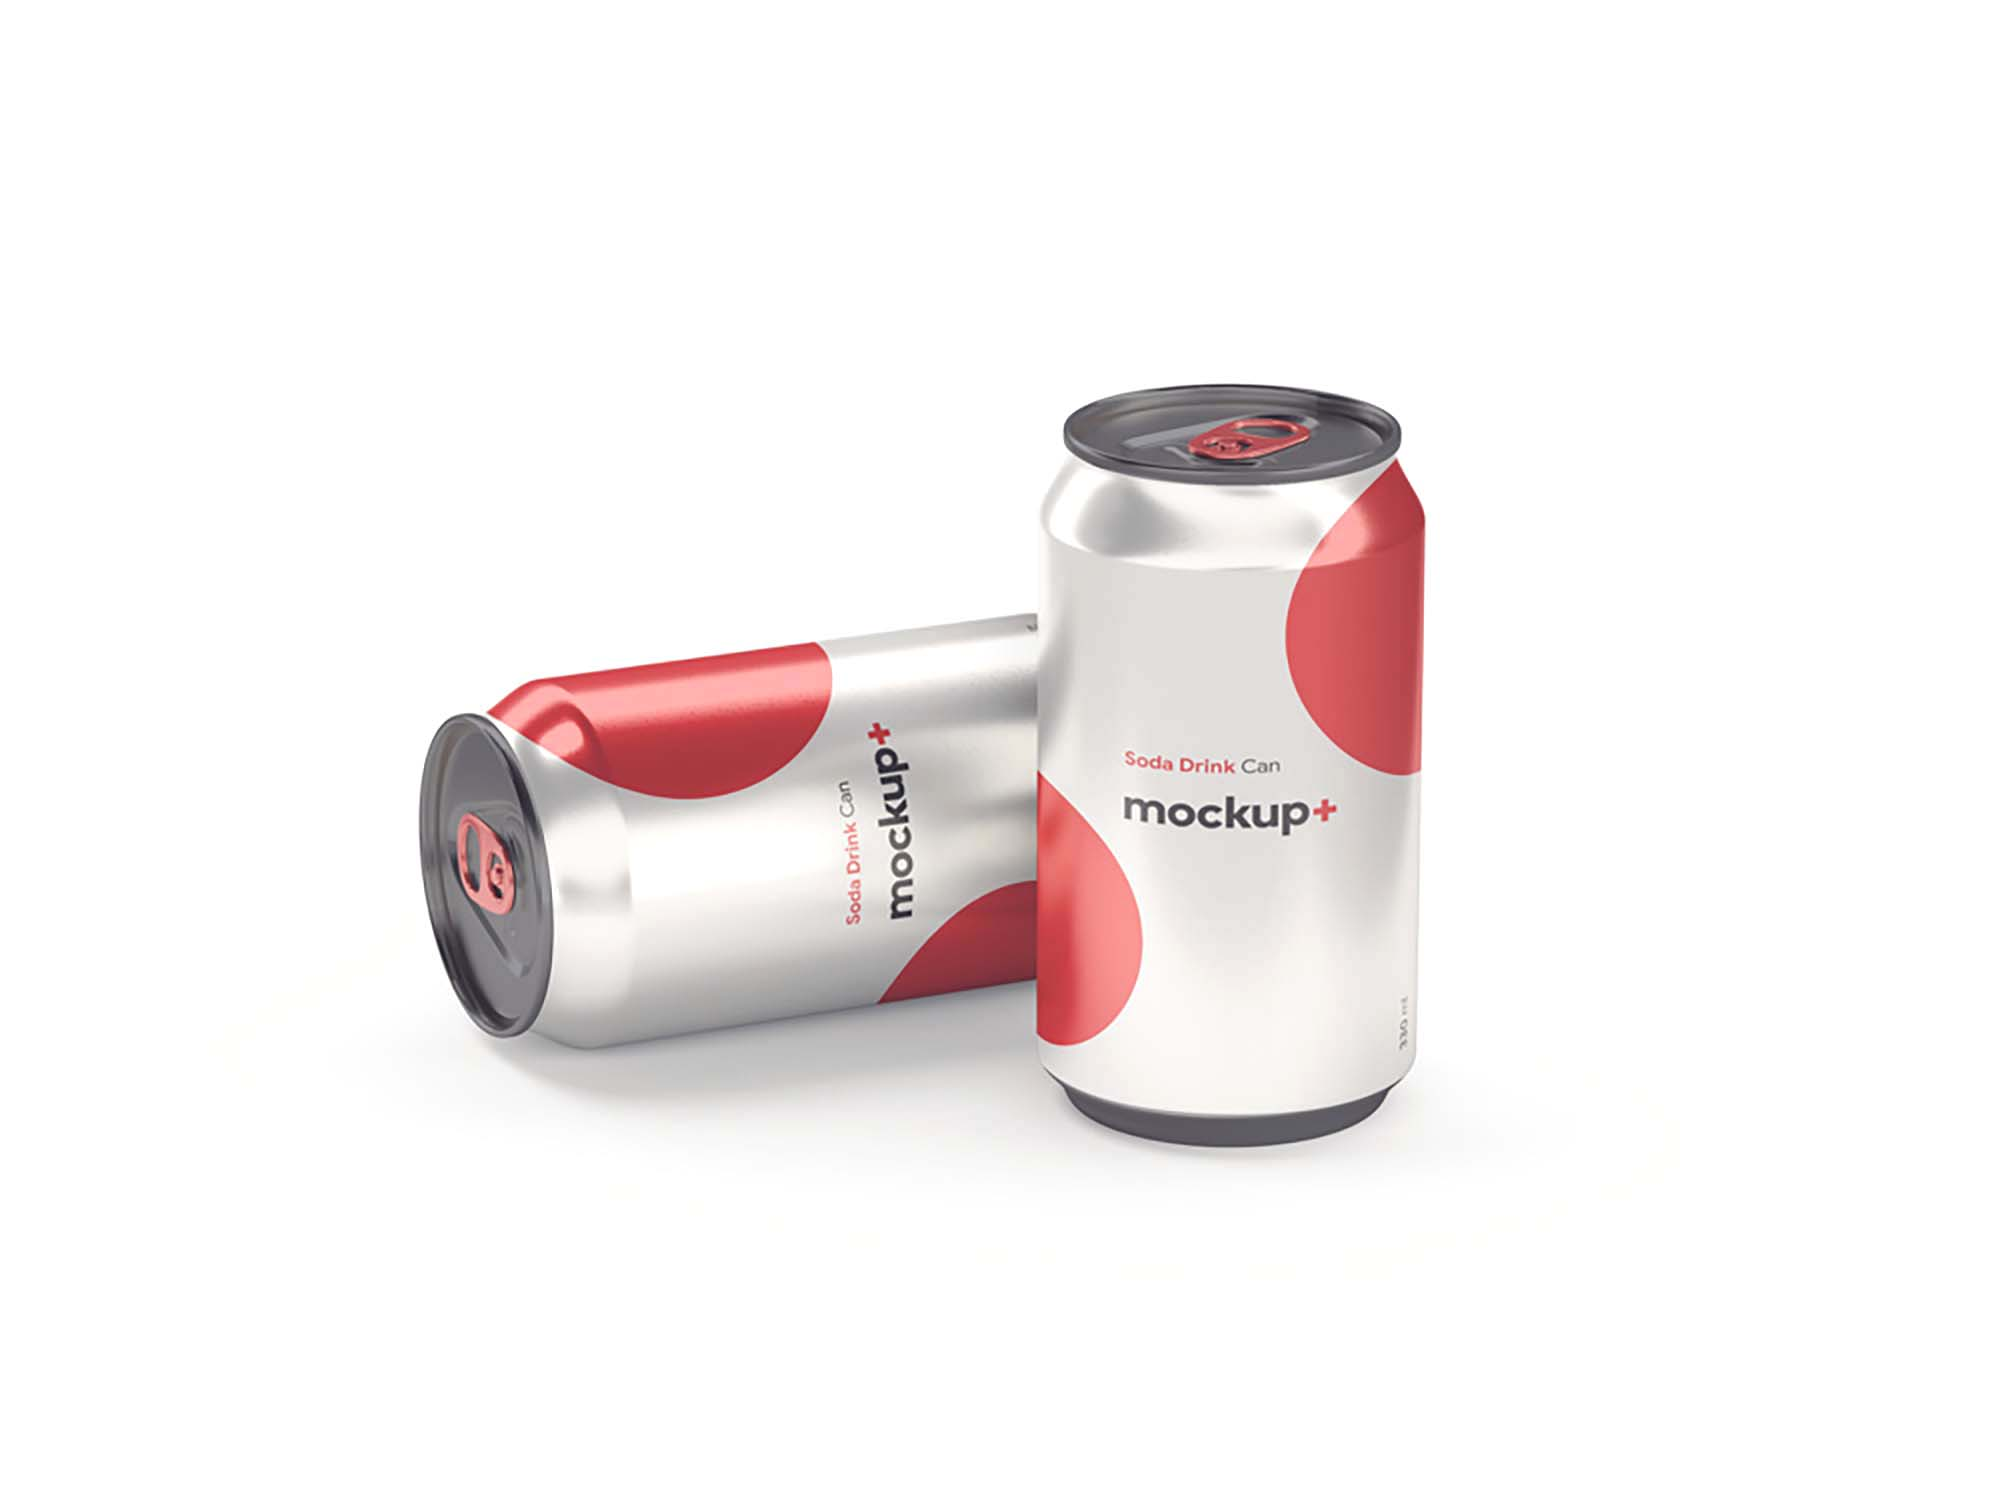 Soda Drink Can Mockup 1